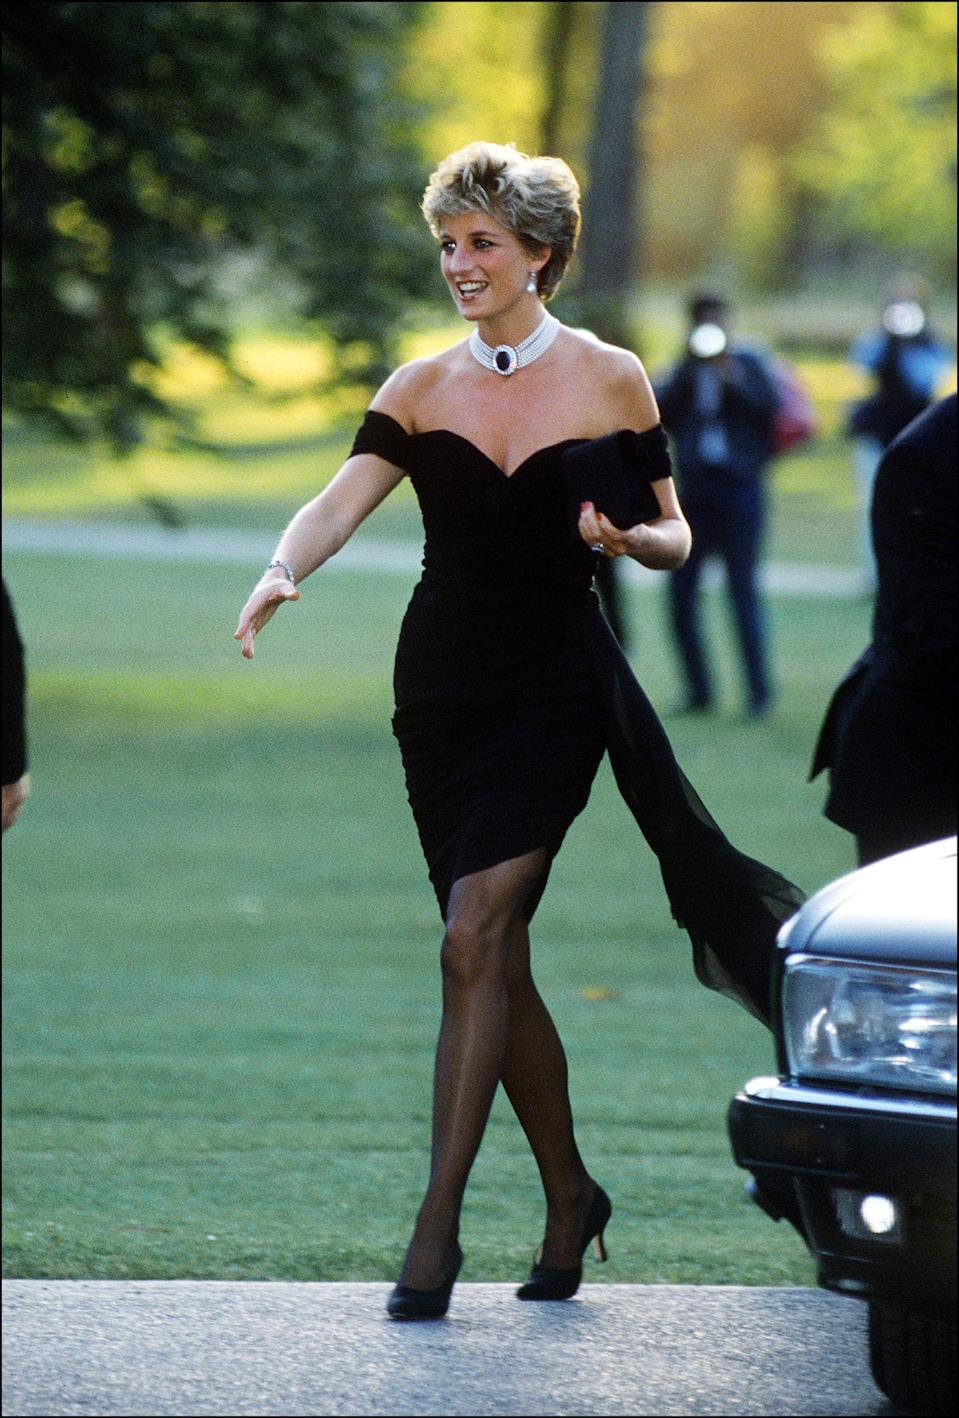 """<p>No longer """"Shy Di""""! In 1994, while a documentary about Prince Charles' infidelity was airing, the leggy Princess Diana donned a clingy rushed minidress for a Serpentine Gallery benefit. The next day, she stole the newspaper headlines with her confident look (one which certainly <a href=""""http://www.goodhousekeeping.com/life/entertainment/news/a38928/kate-middleton-queens-birthday/"""" rel=""""nofollow noopener"""" target=""""_blank"""" data-ylk=""""slk:broke the queen's dress code"""" class=""""link rapid-noclick-resp"""">broke the queen's dress code</a>).<br></p>"""